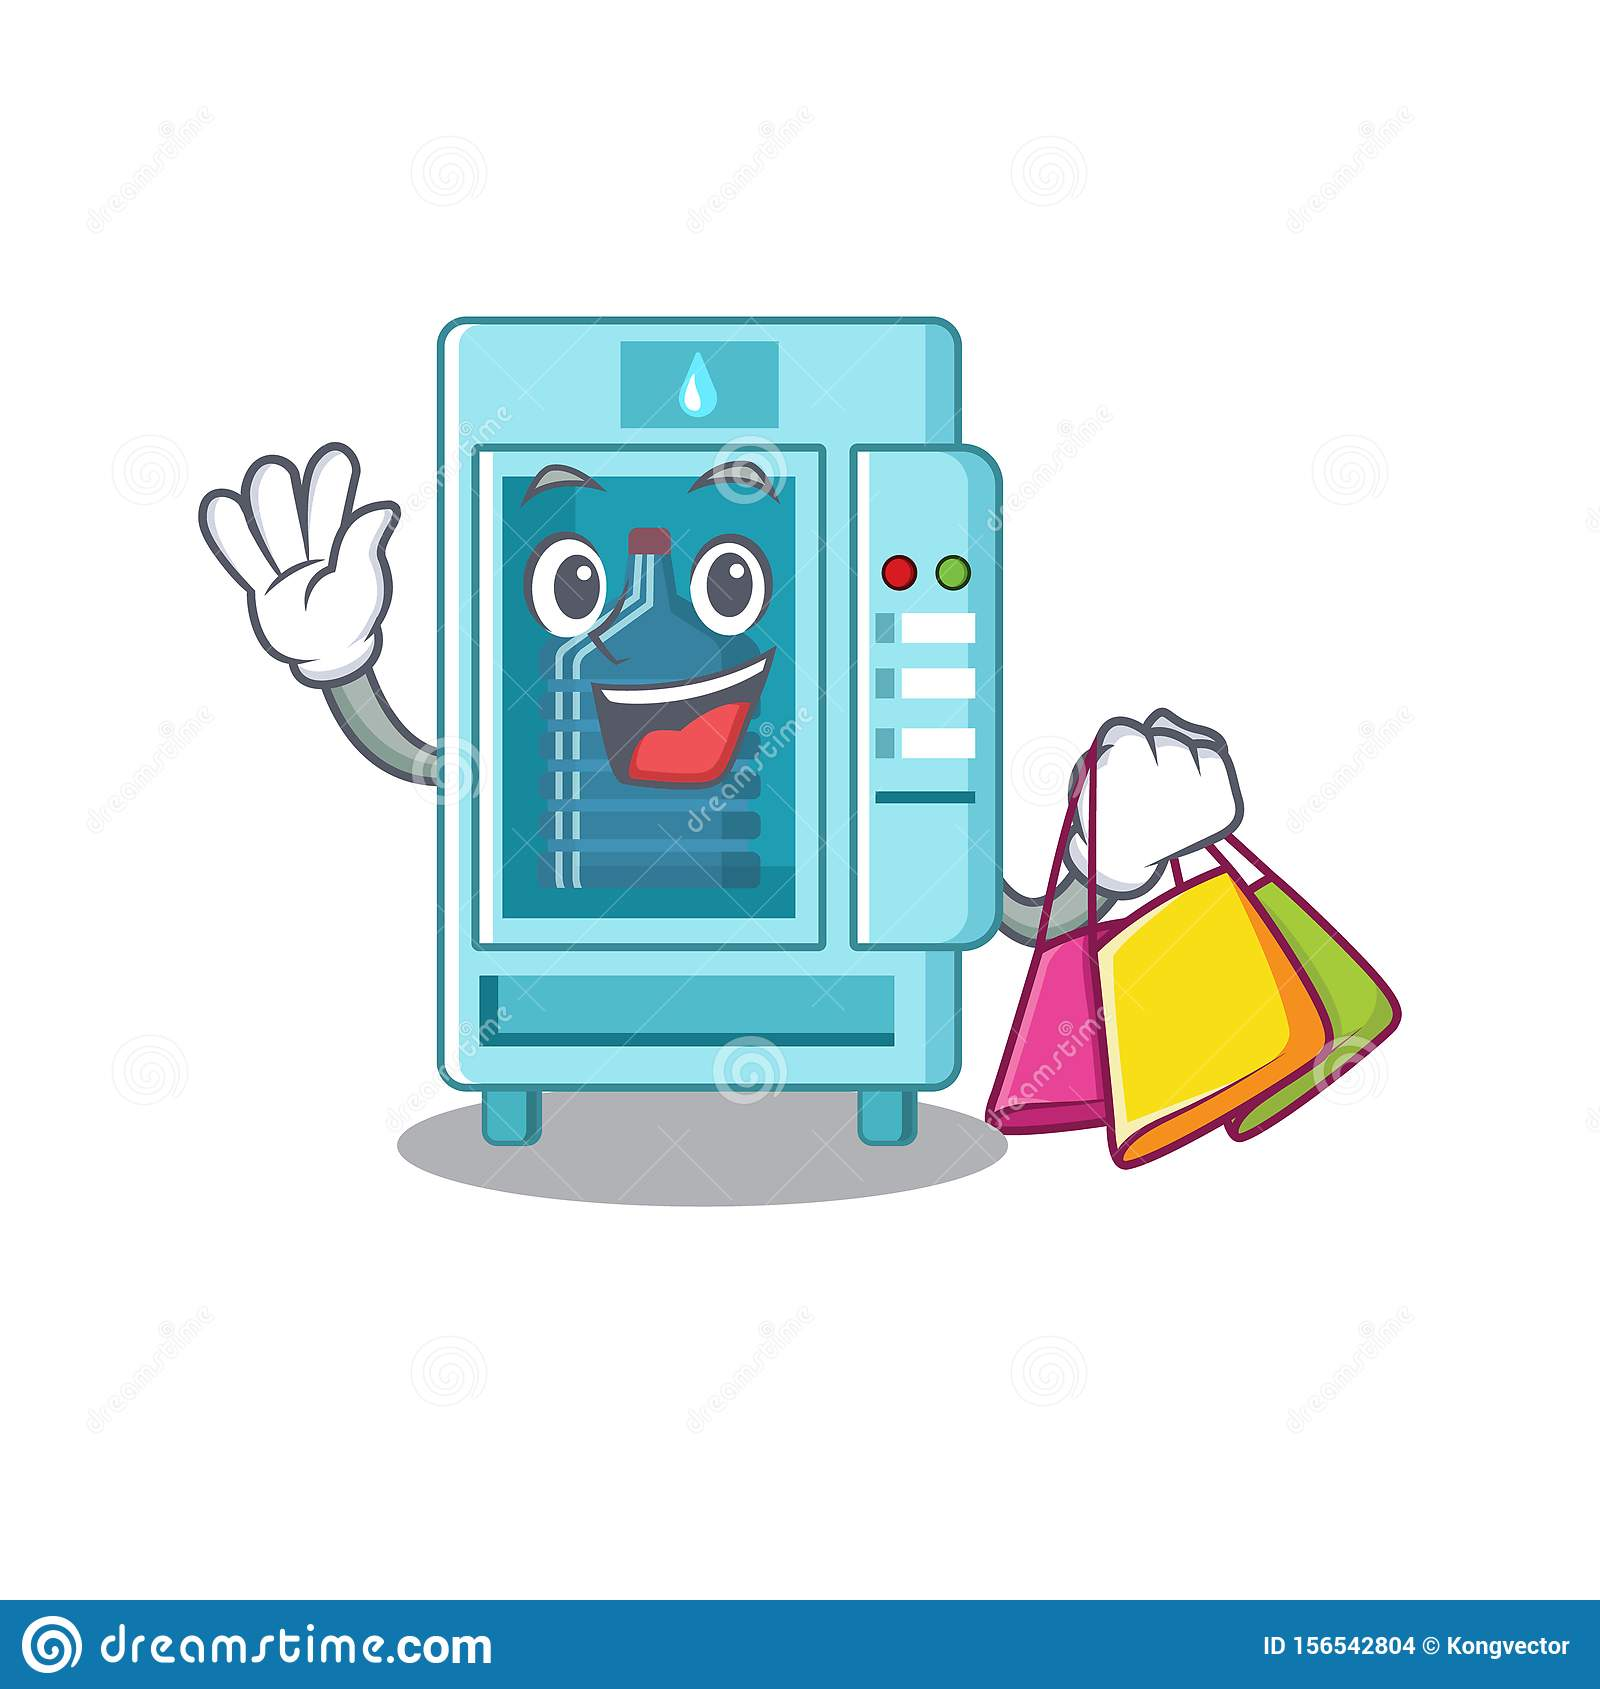 Shopping water vending machine in a character